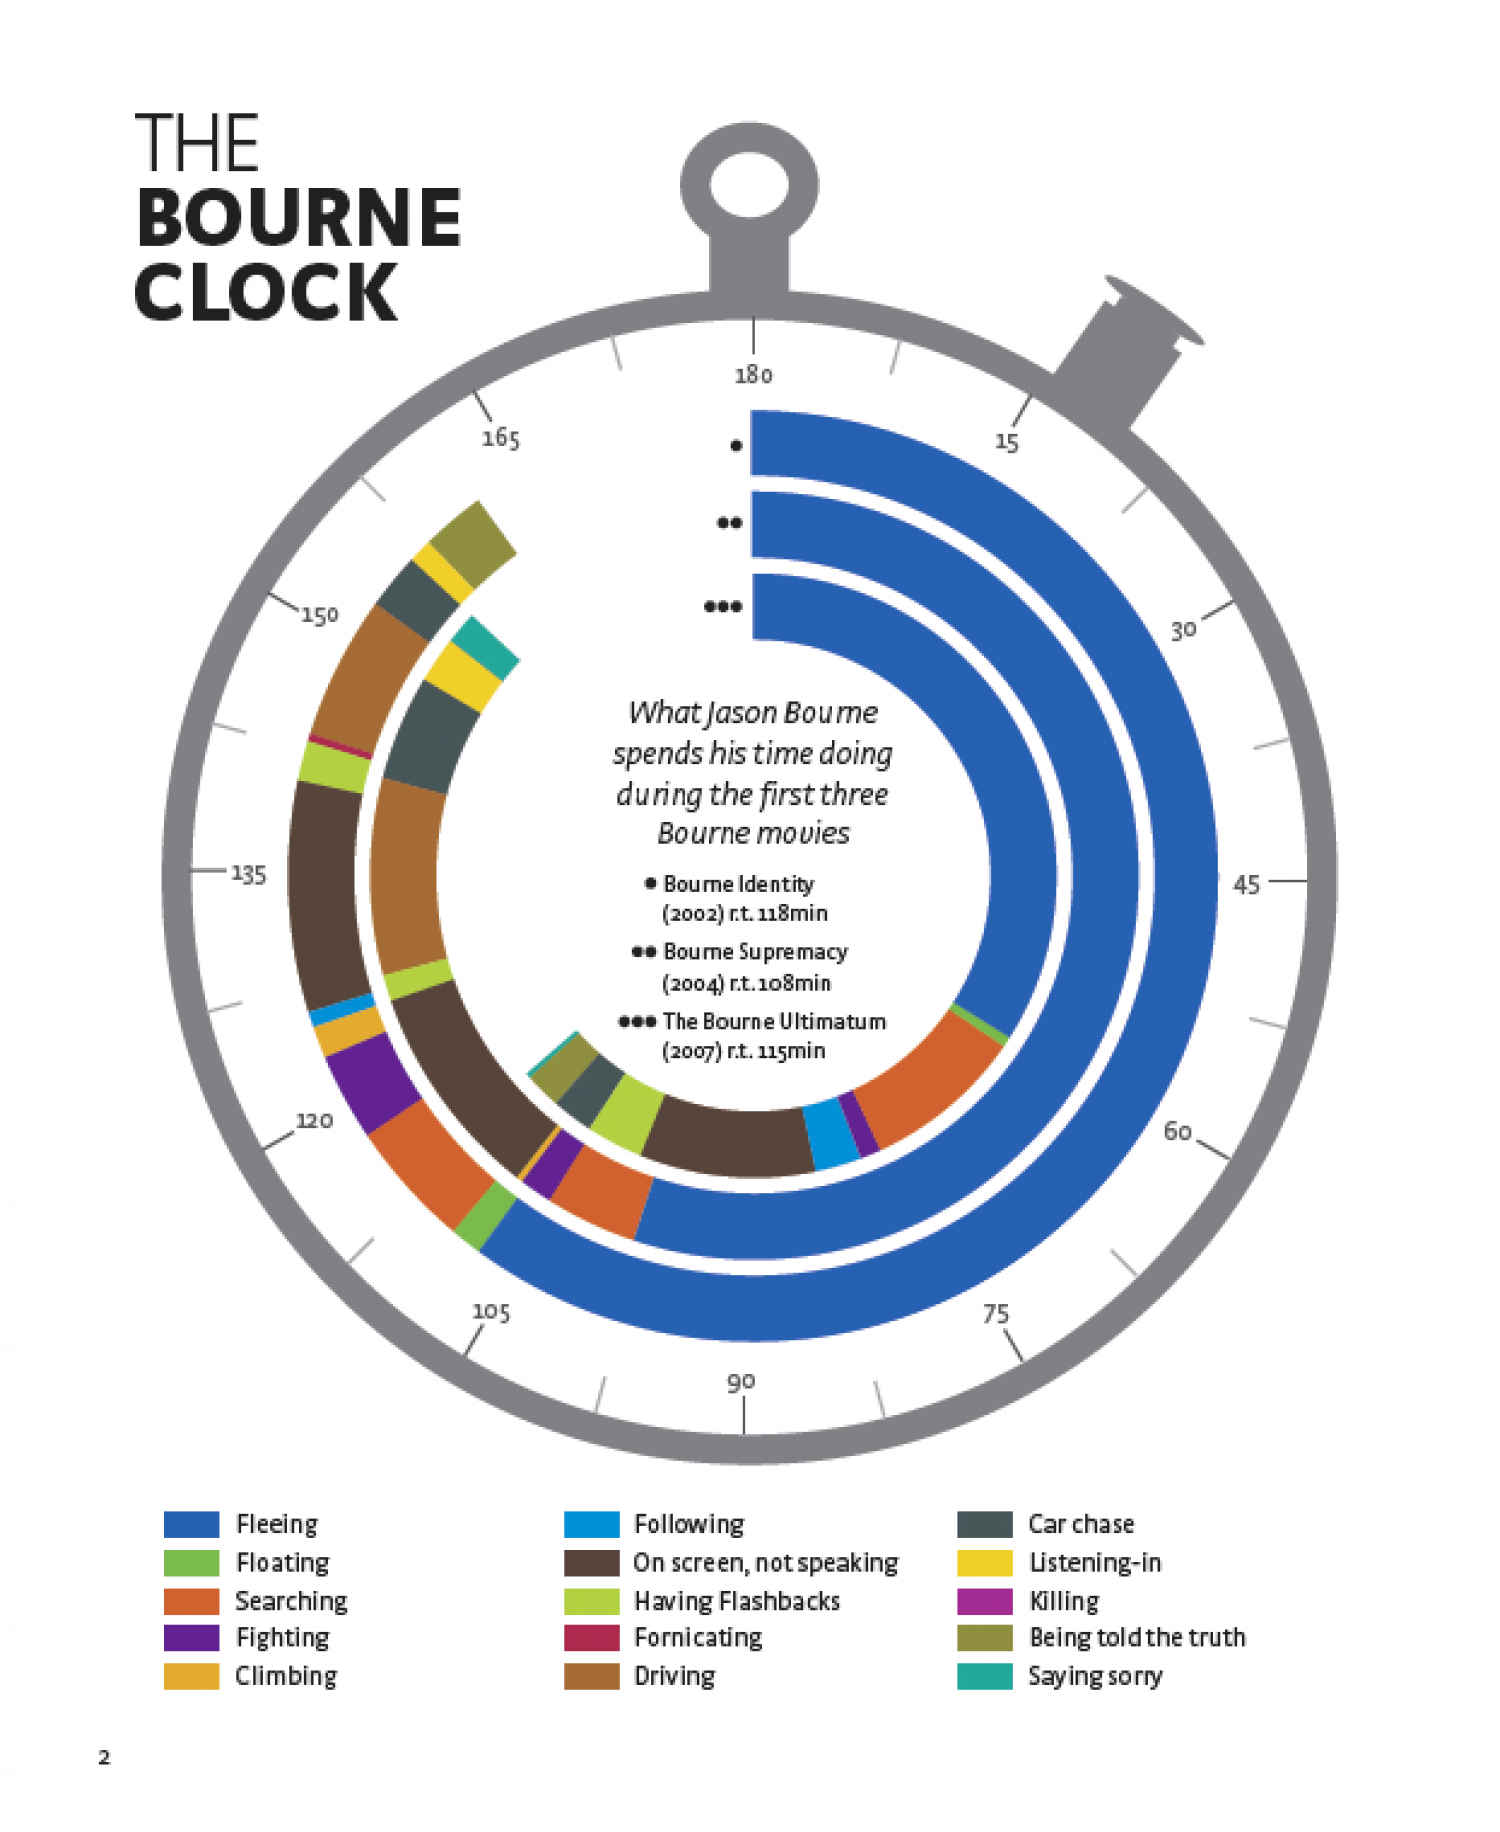 The Bourne Clock Infographic